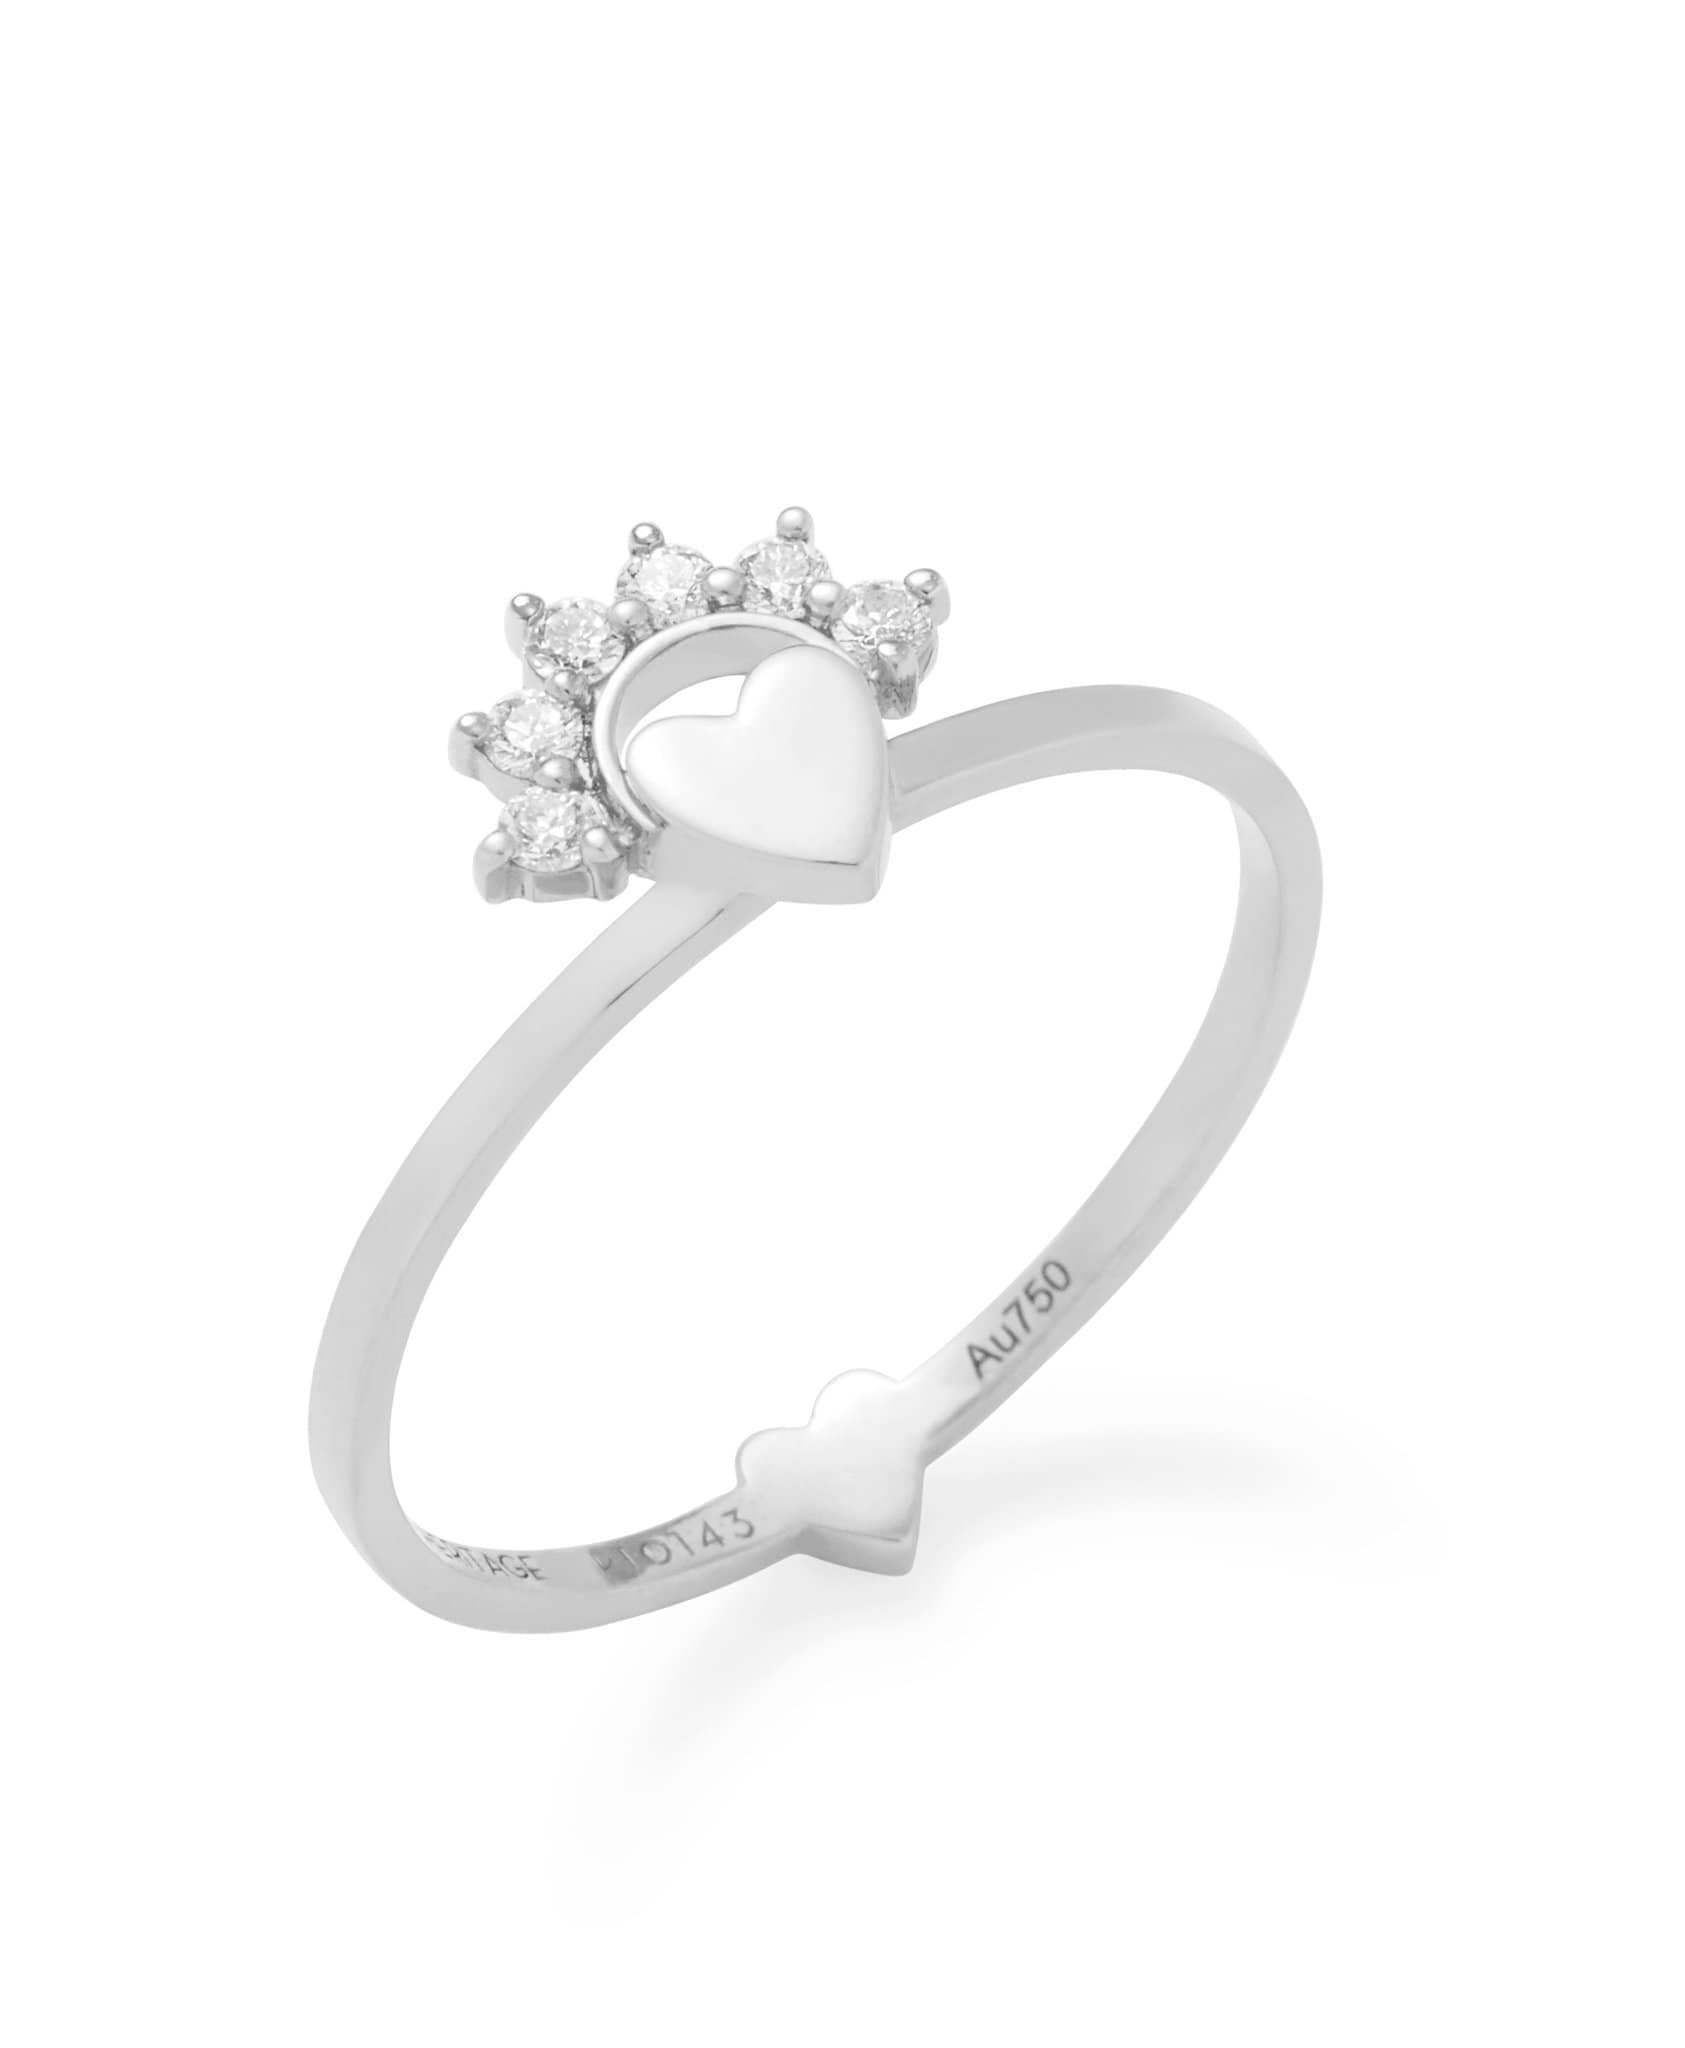 Small Love Ring: Discover Luxury Fine Jewelry | Nouvel Heritage || White Gold